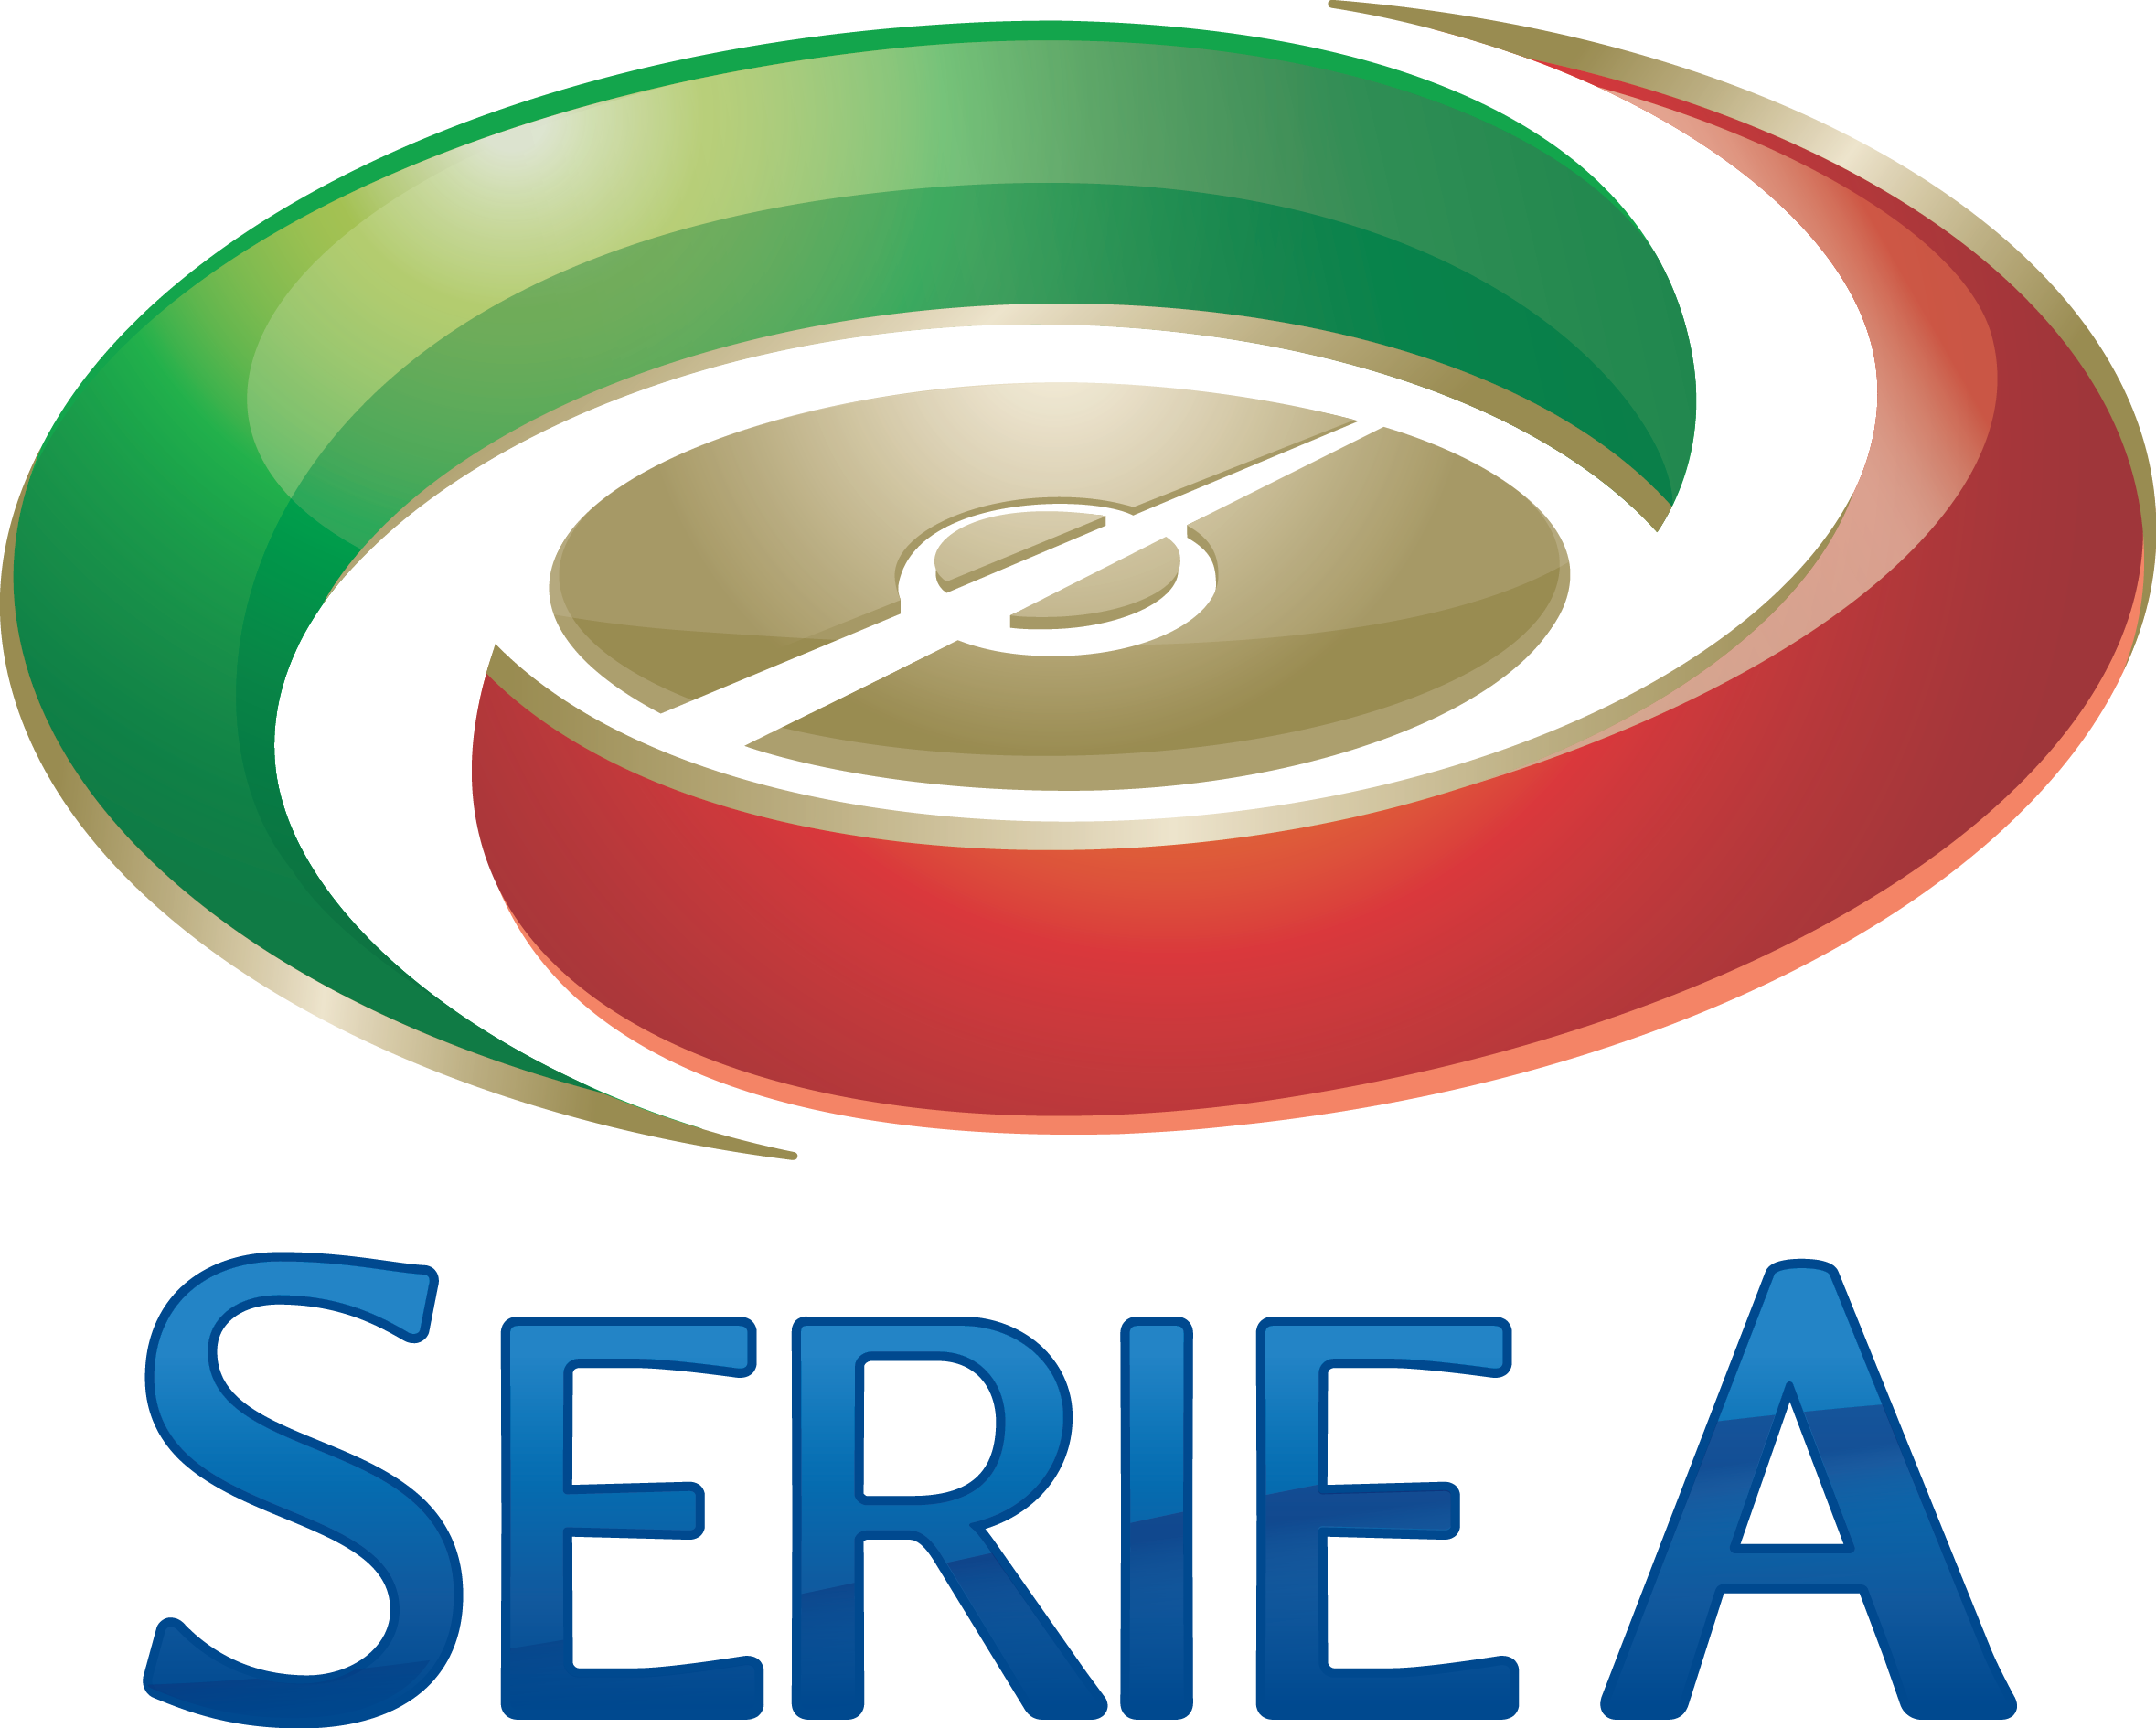 Genoa vs Inter Milan 3-2 All goals and highlights 23/05/2015